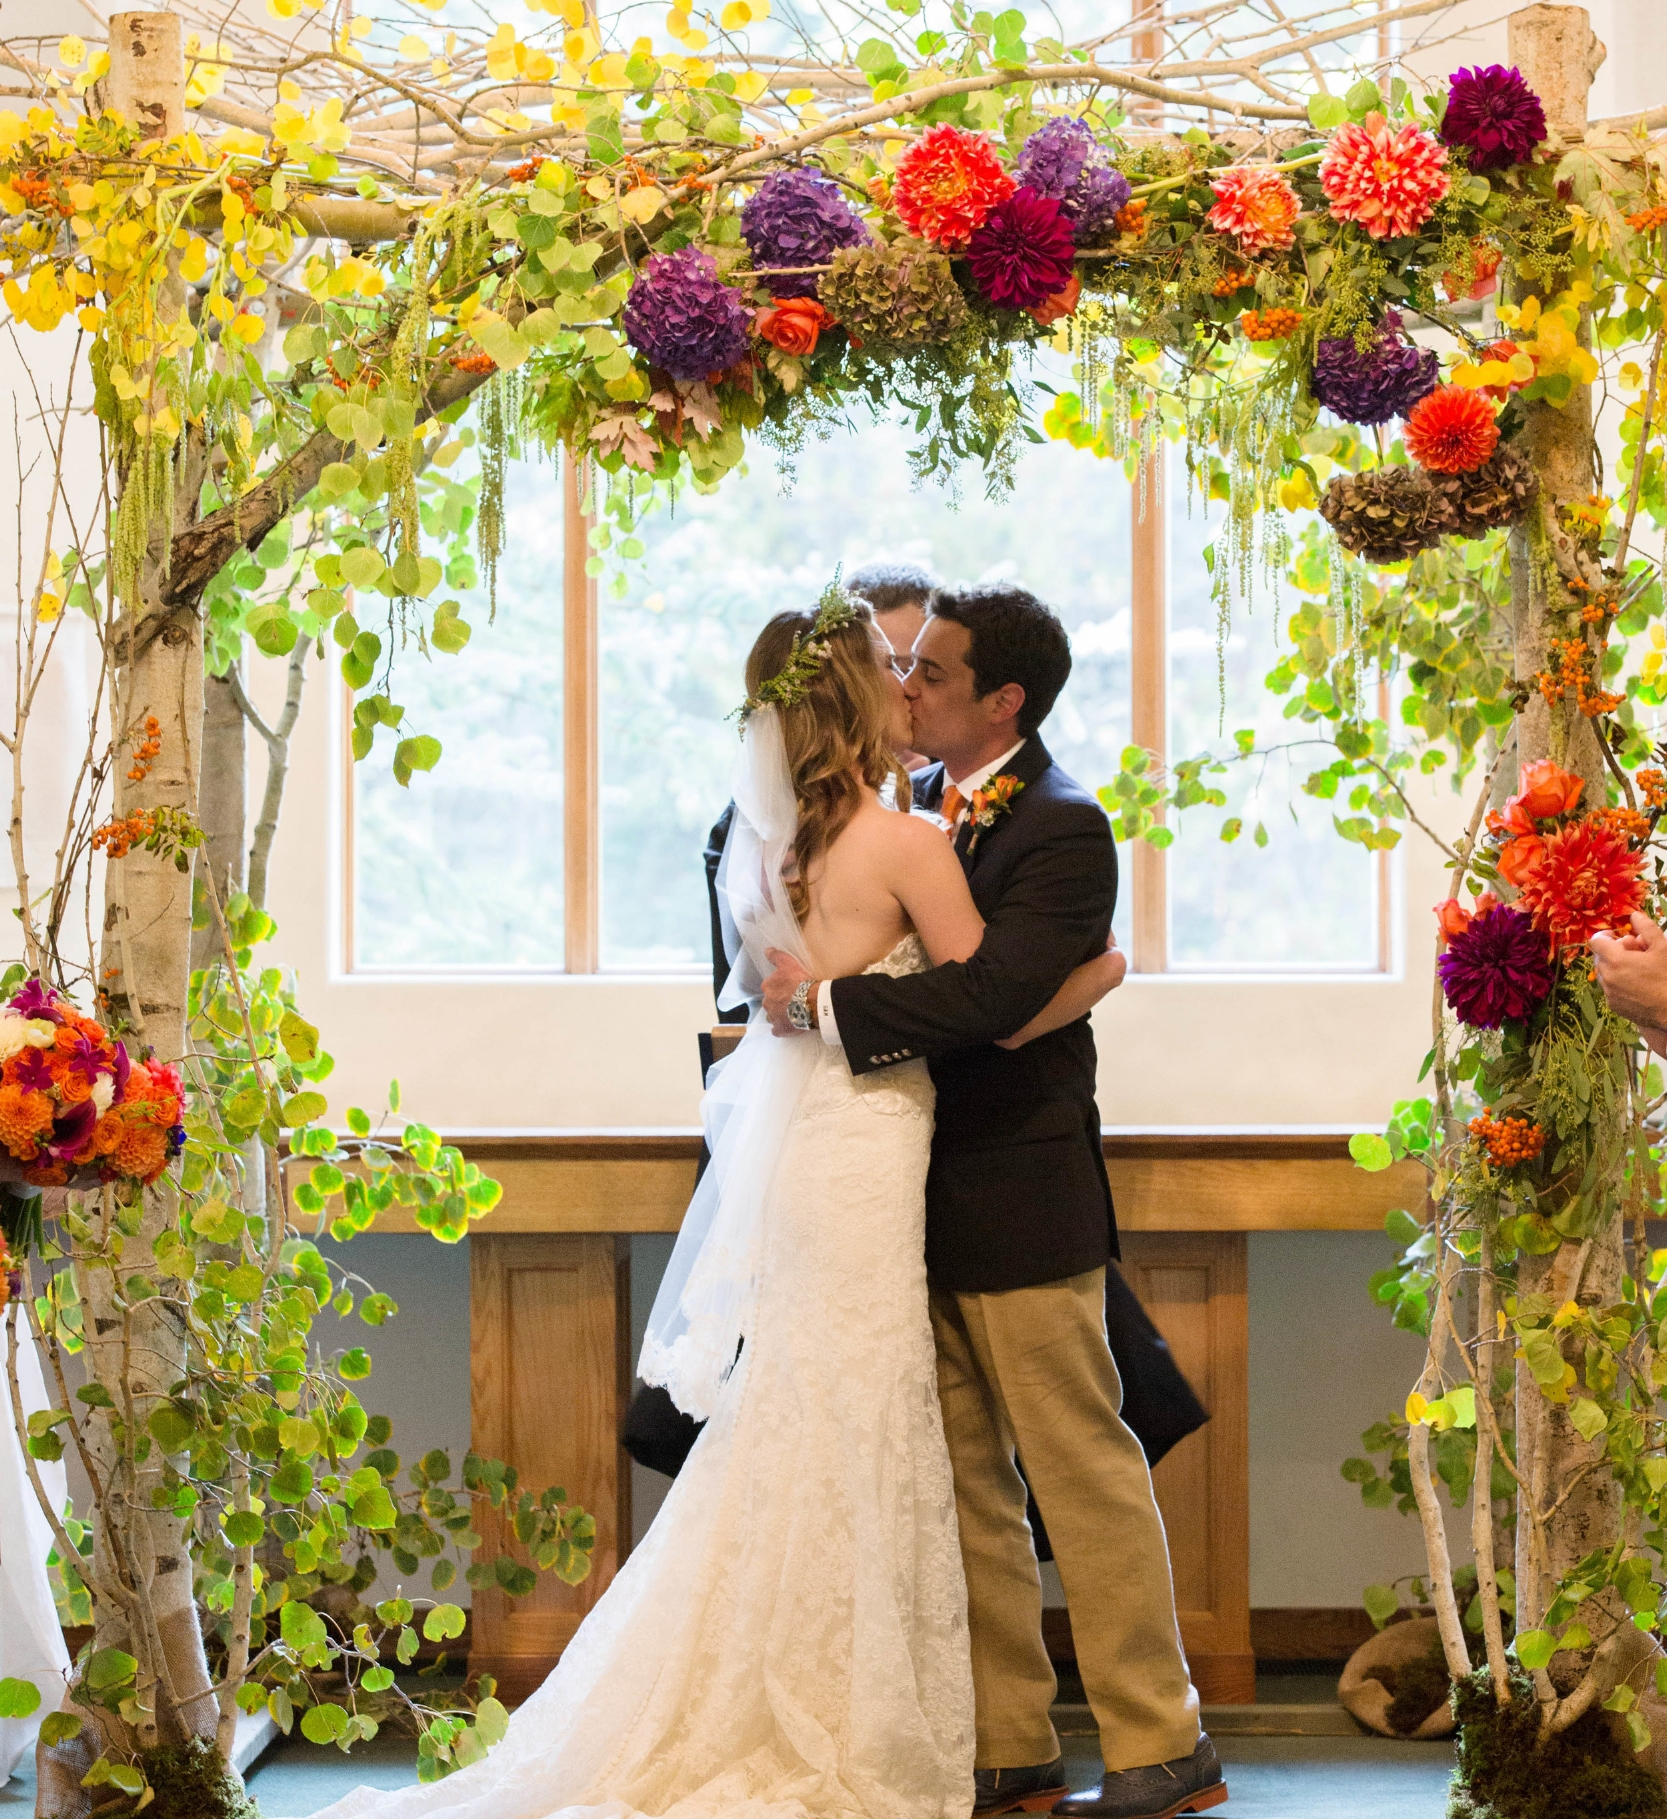 The flowers were perfection! You definitely got the concept and executed beautifully!Thank you for adding the final touches to make our wedding perfect! - LAURA (NIX) GERSON